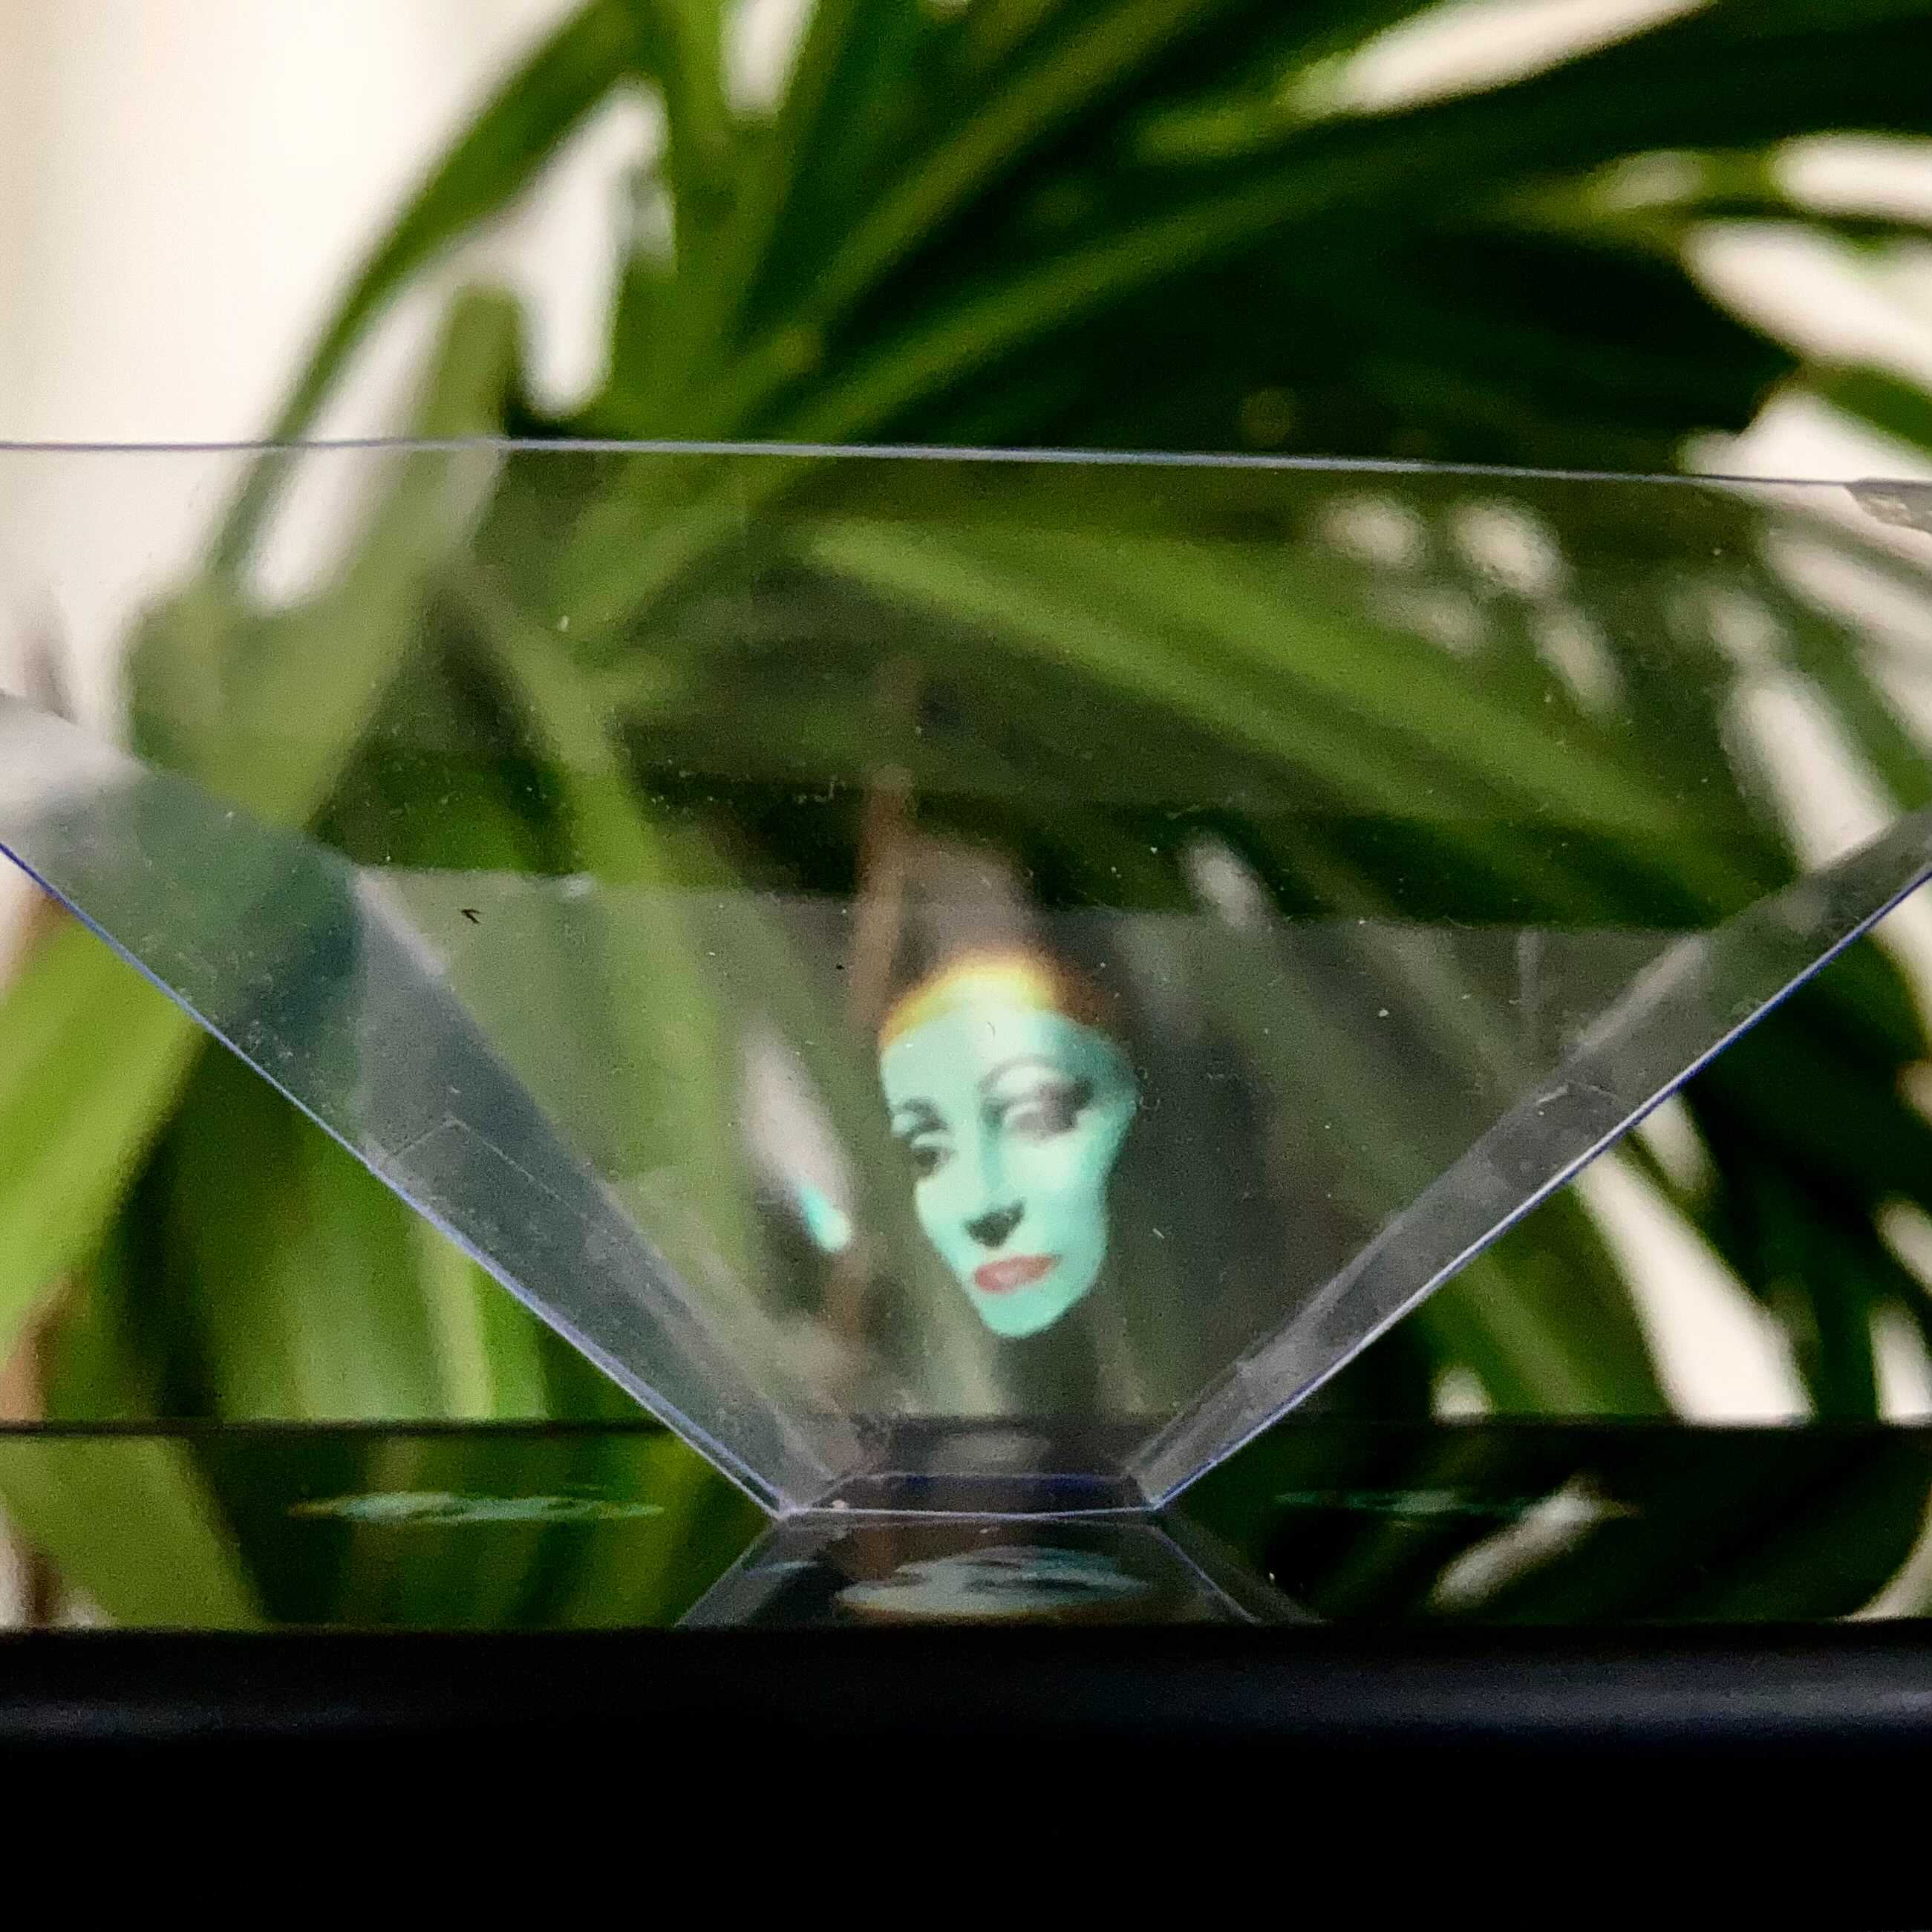 Build a 3D Hologram in 10 Minutes - Video Presentation by Igor Lobiv